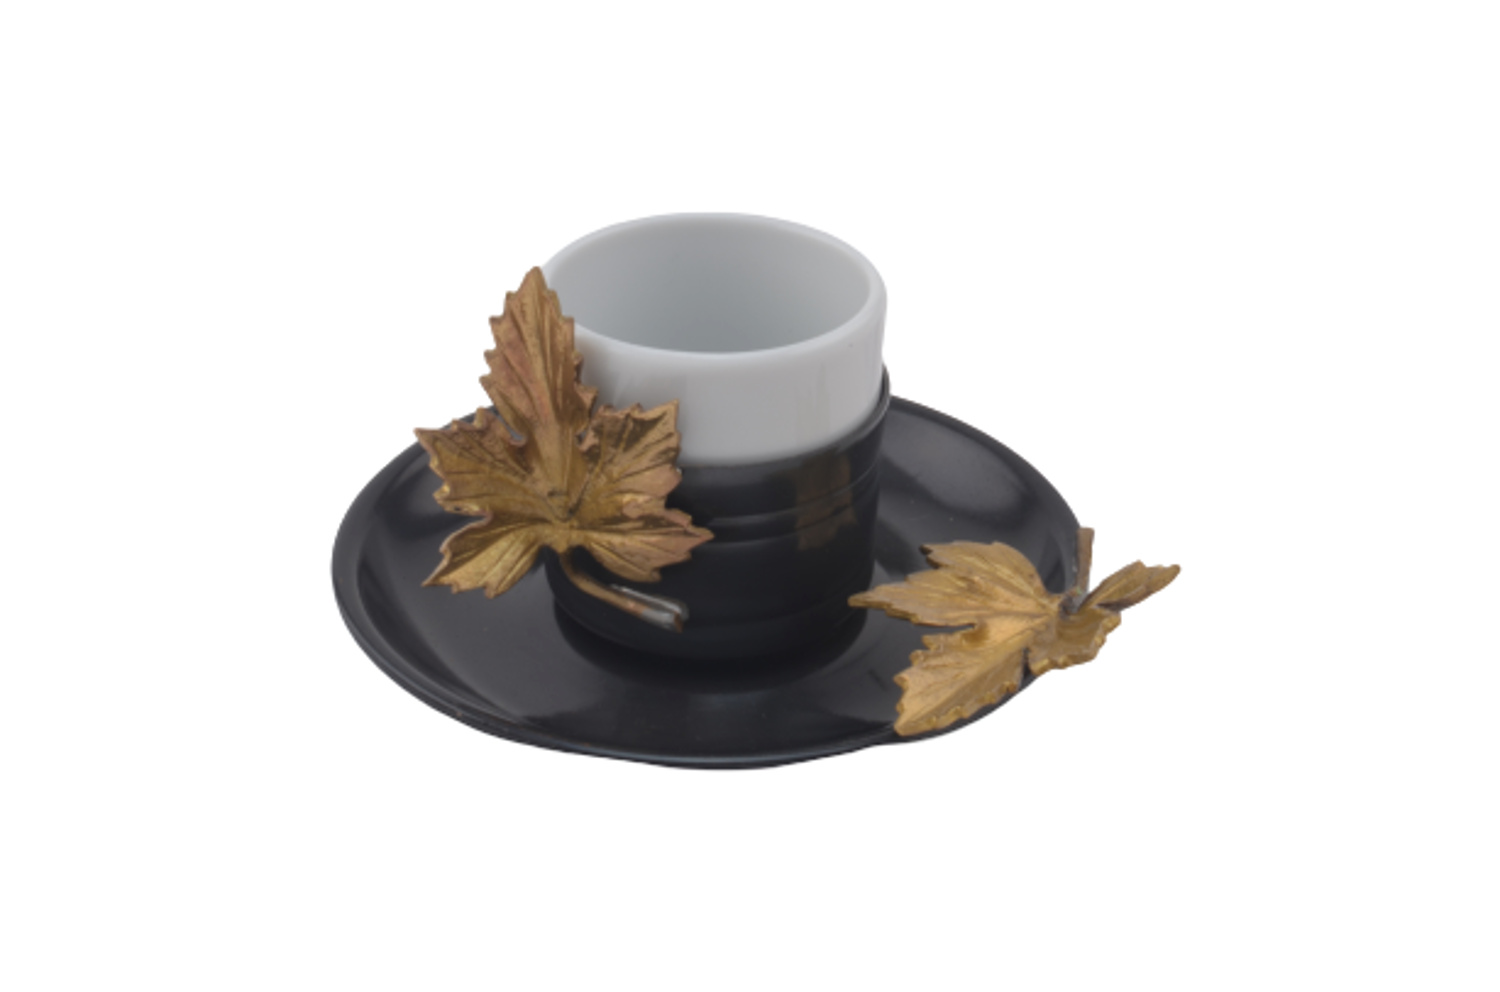 Picture of MEVLANA TURKISH COFFEE CUP BLACK GOLD LEAF